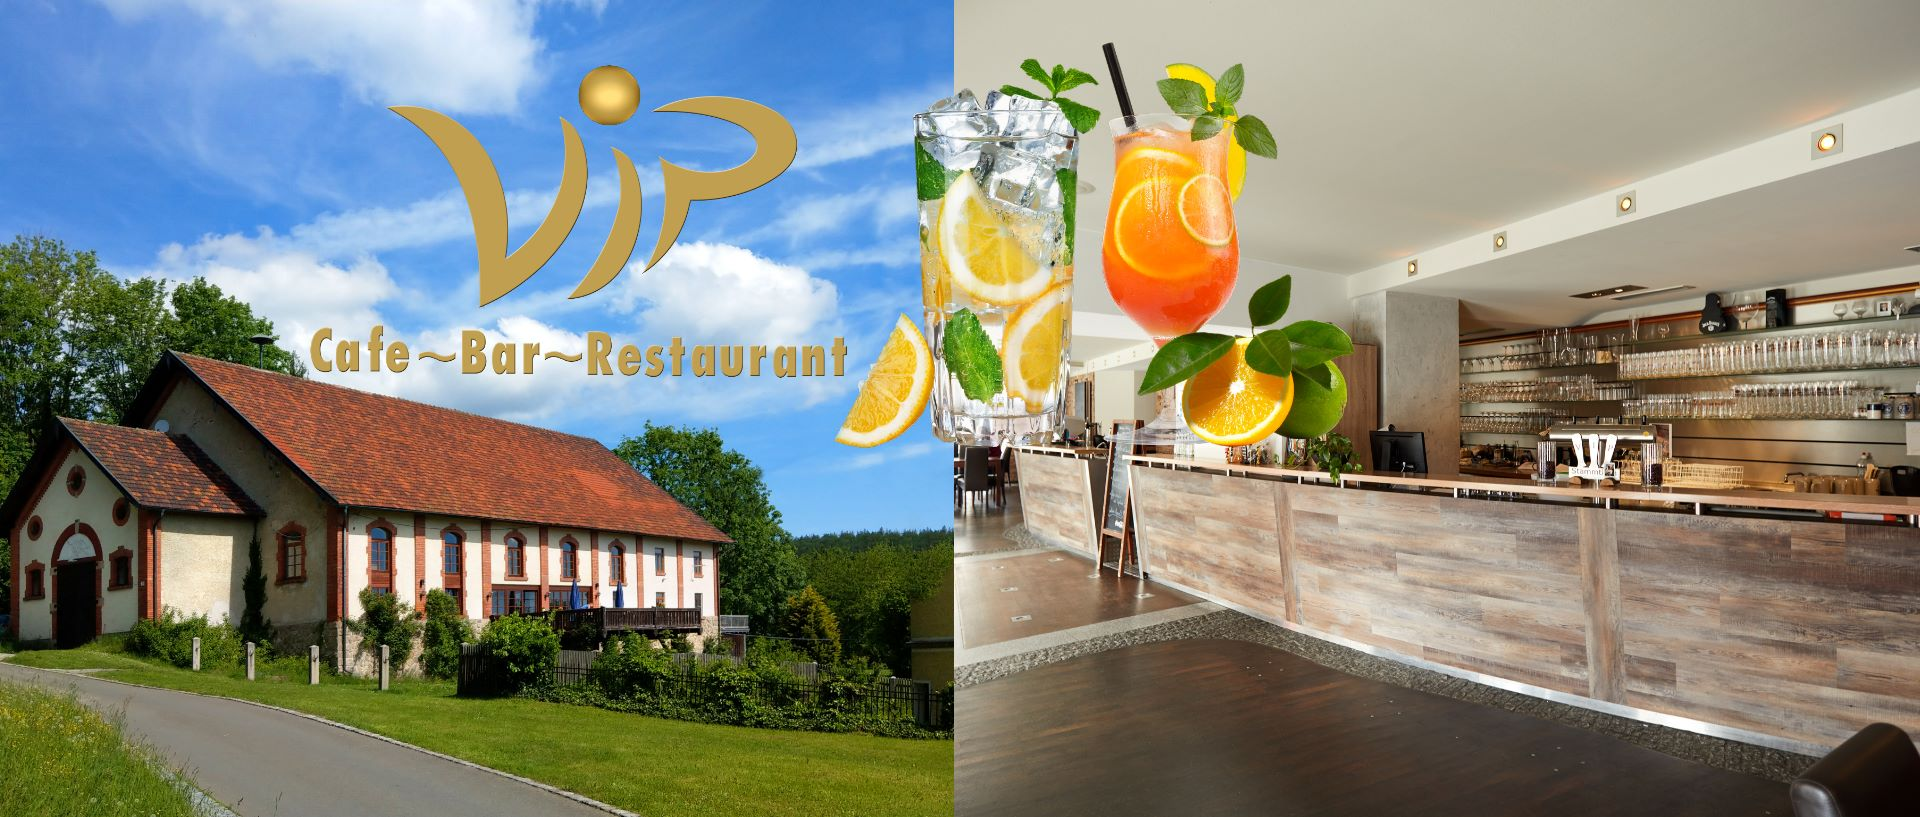 Cafe, Bar, Restaurant beim Vip Hans